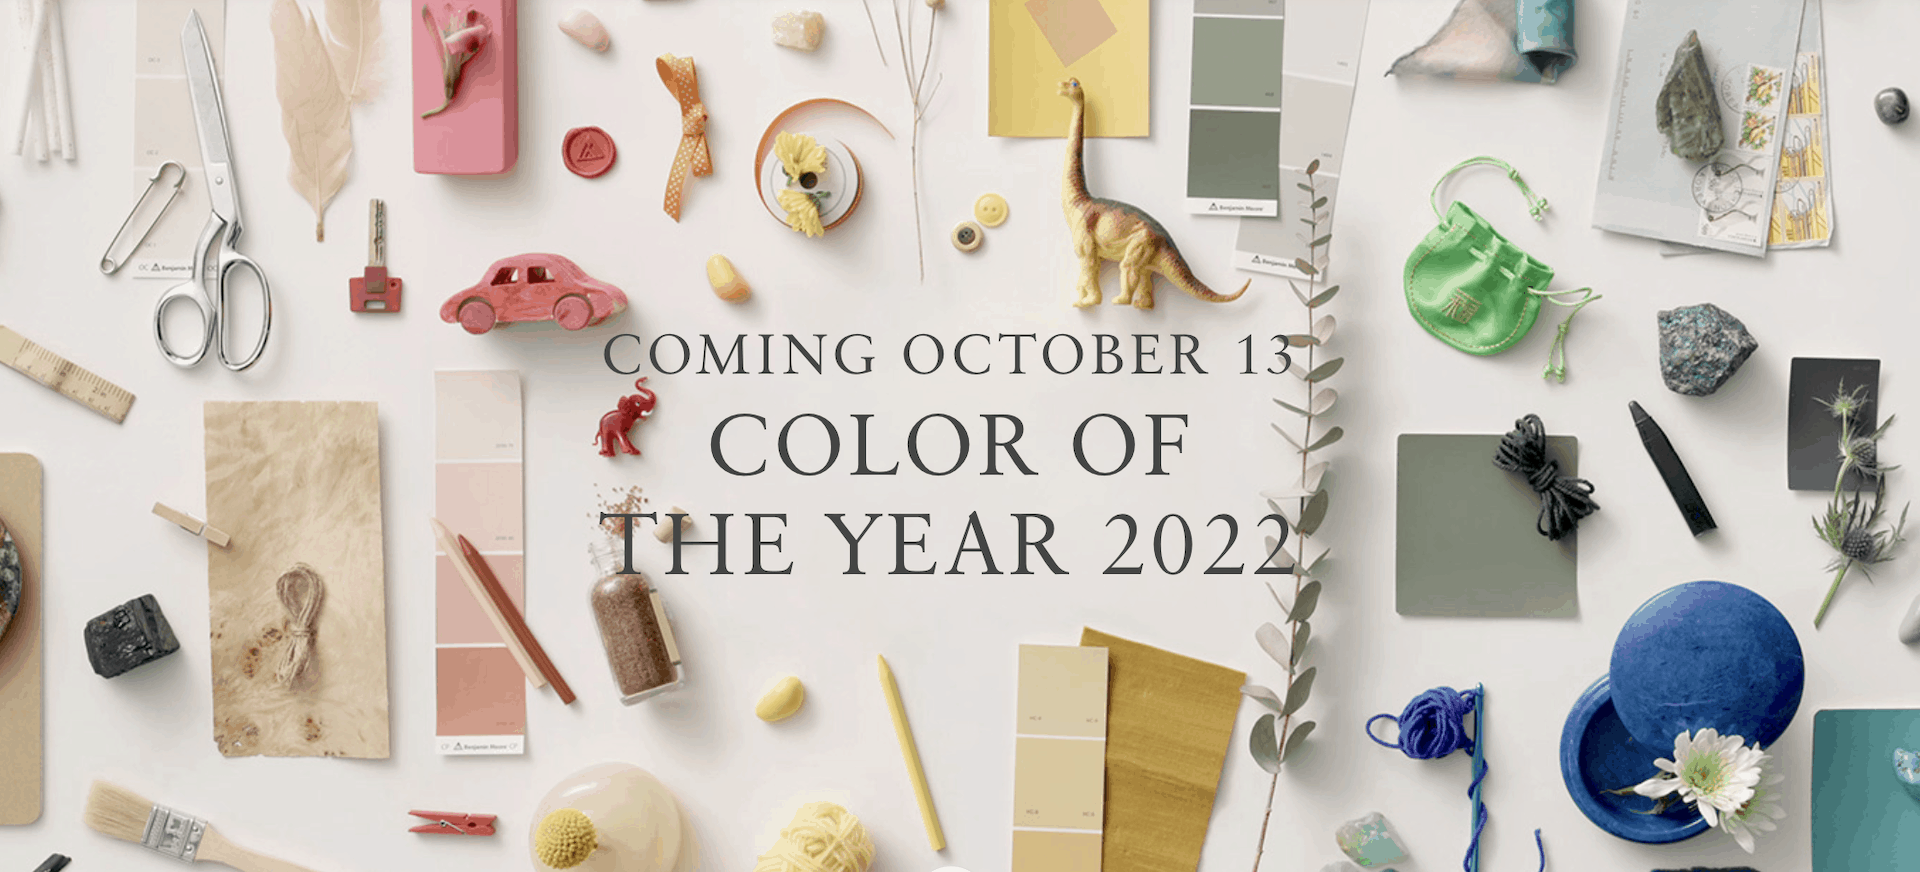 Color of the Year 2022 - Benjamin Moore Near Promotion Montclair, New Jersey (NJ)